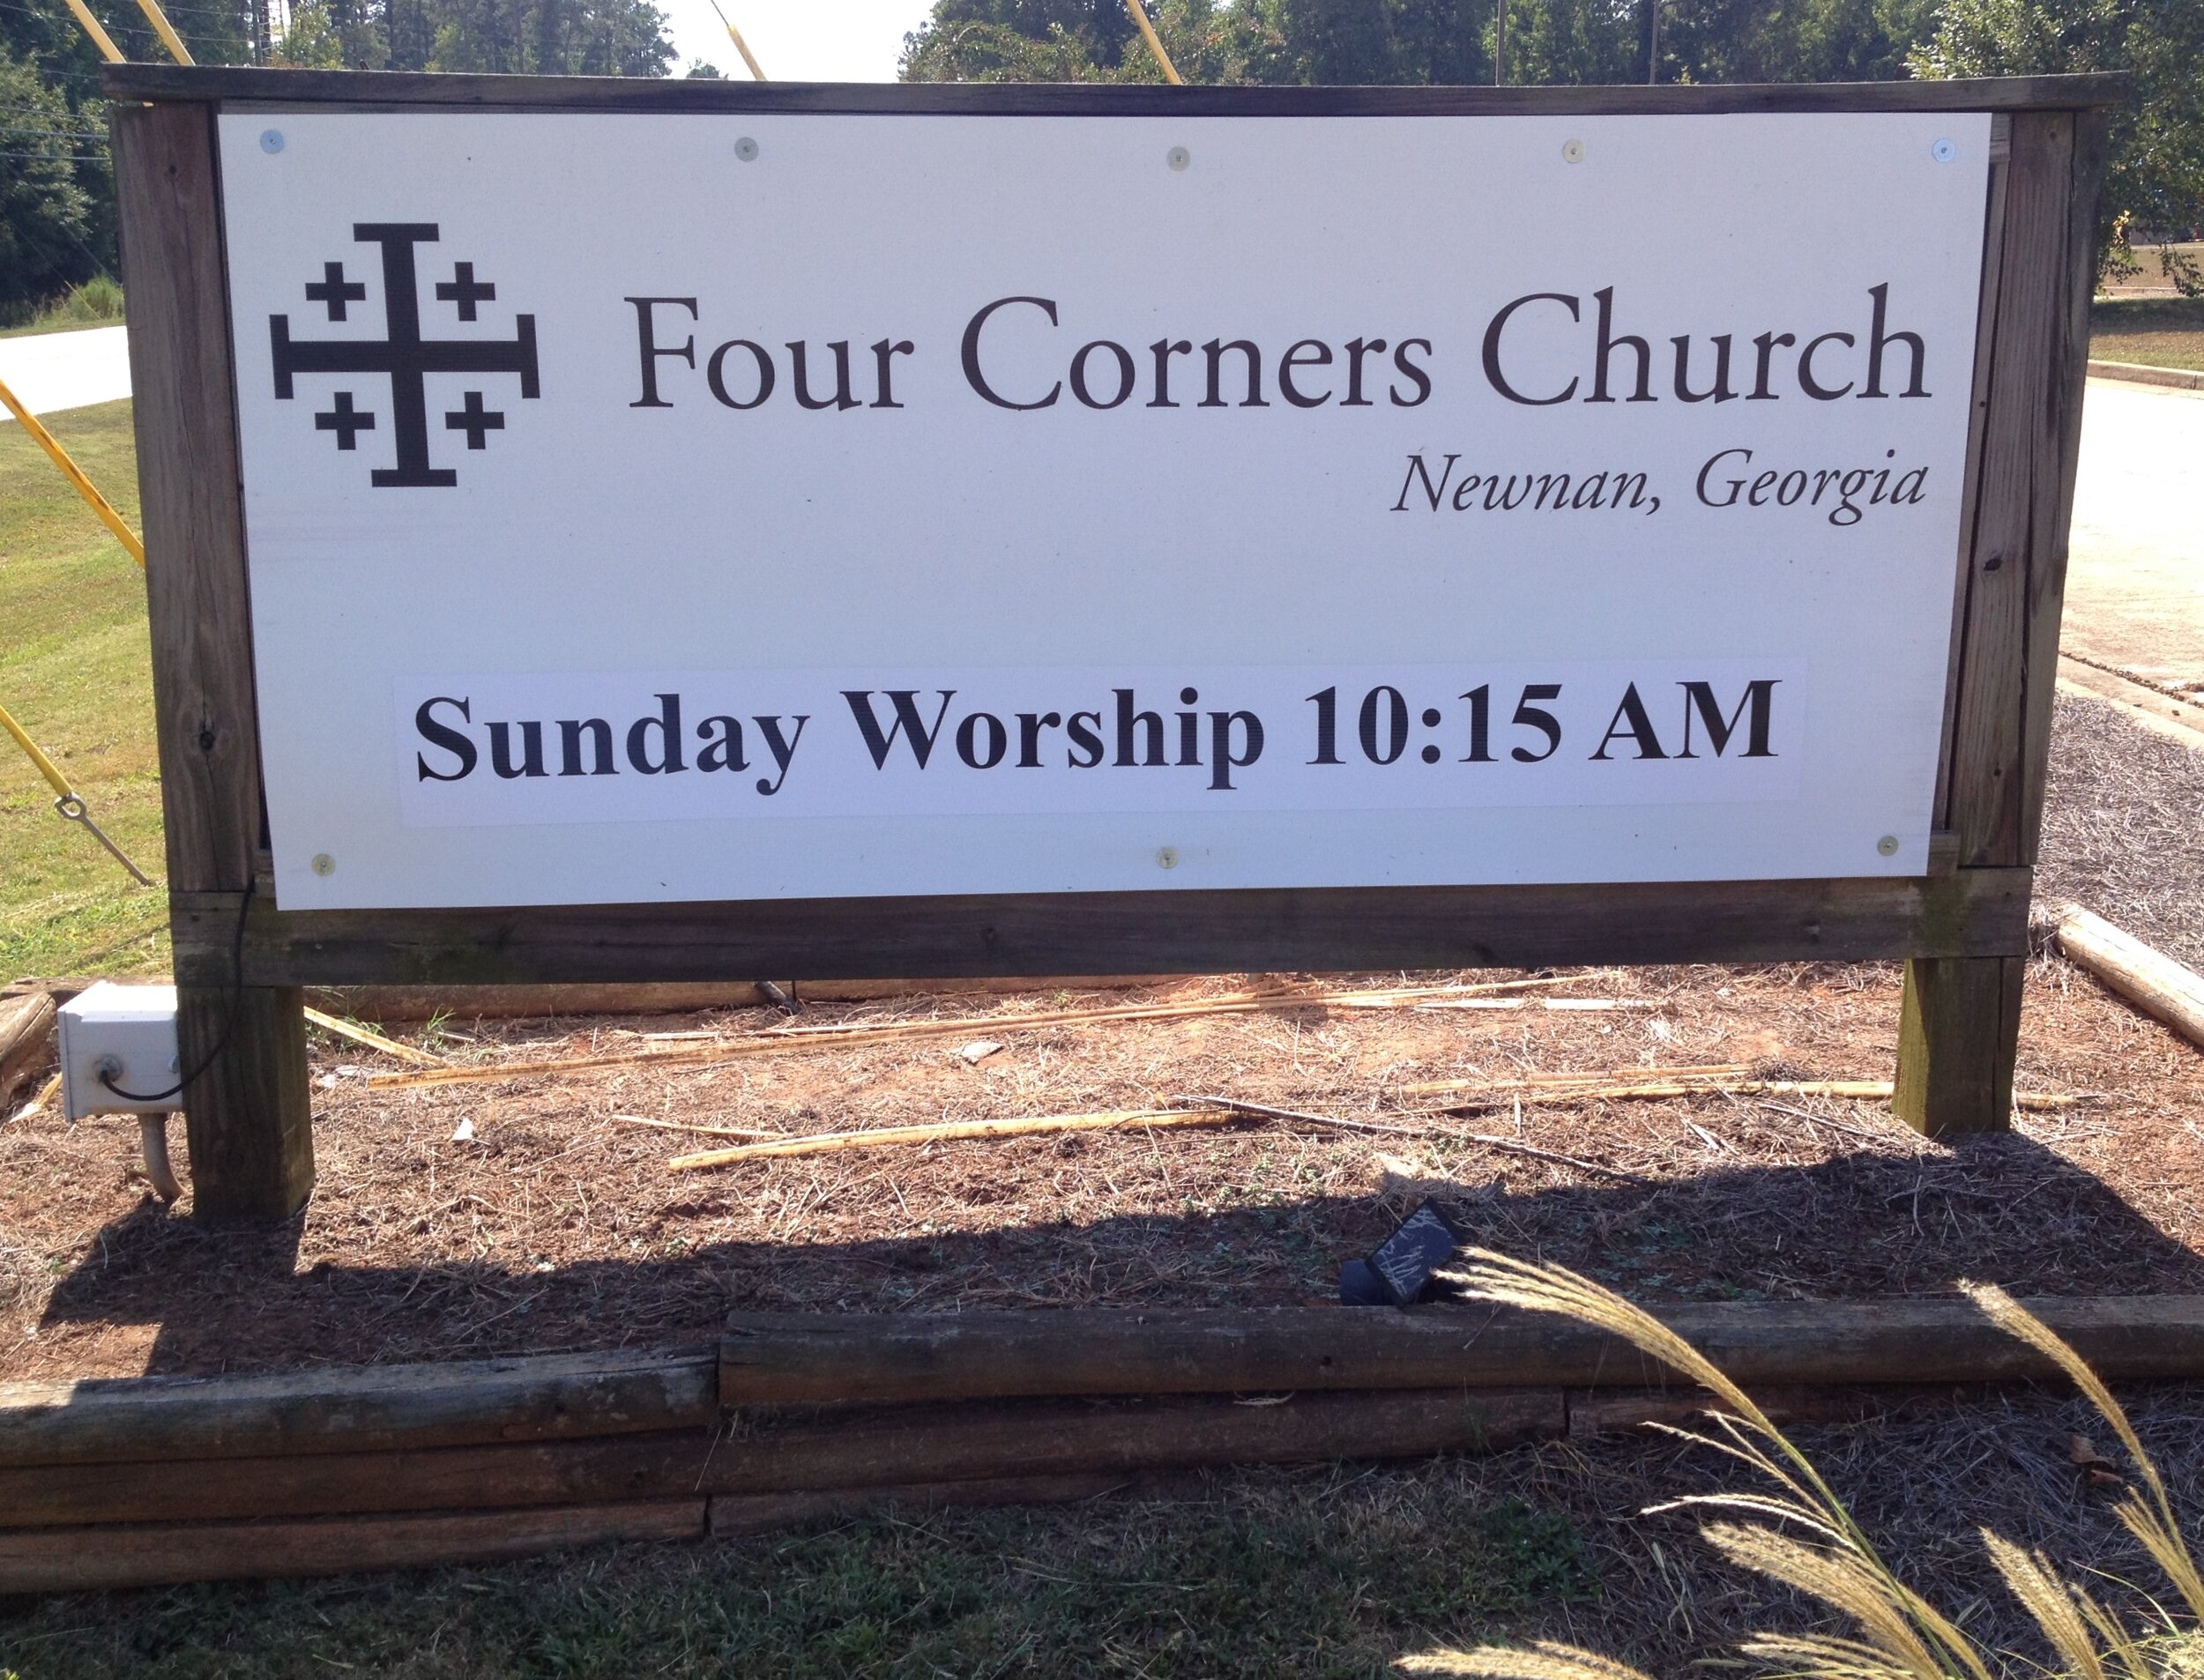 Come and worship with us at Four Corners Church!